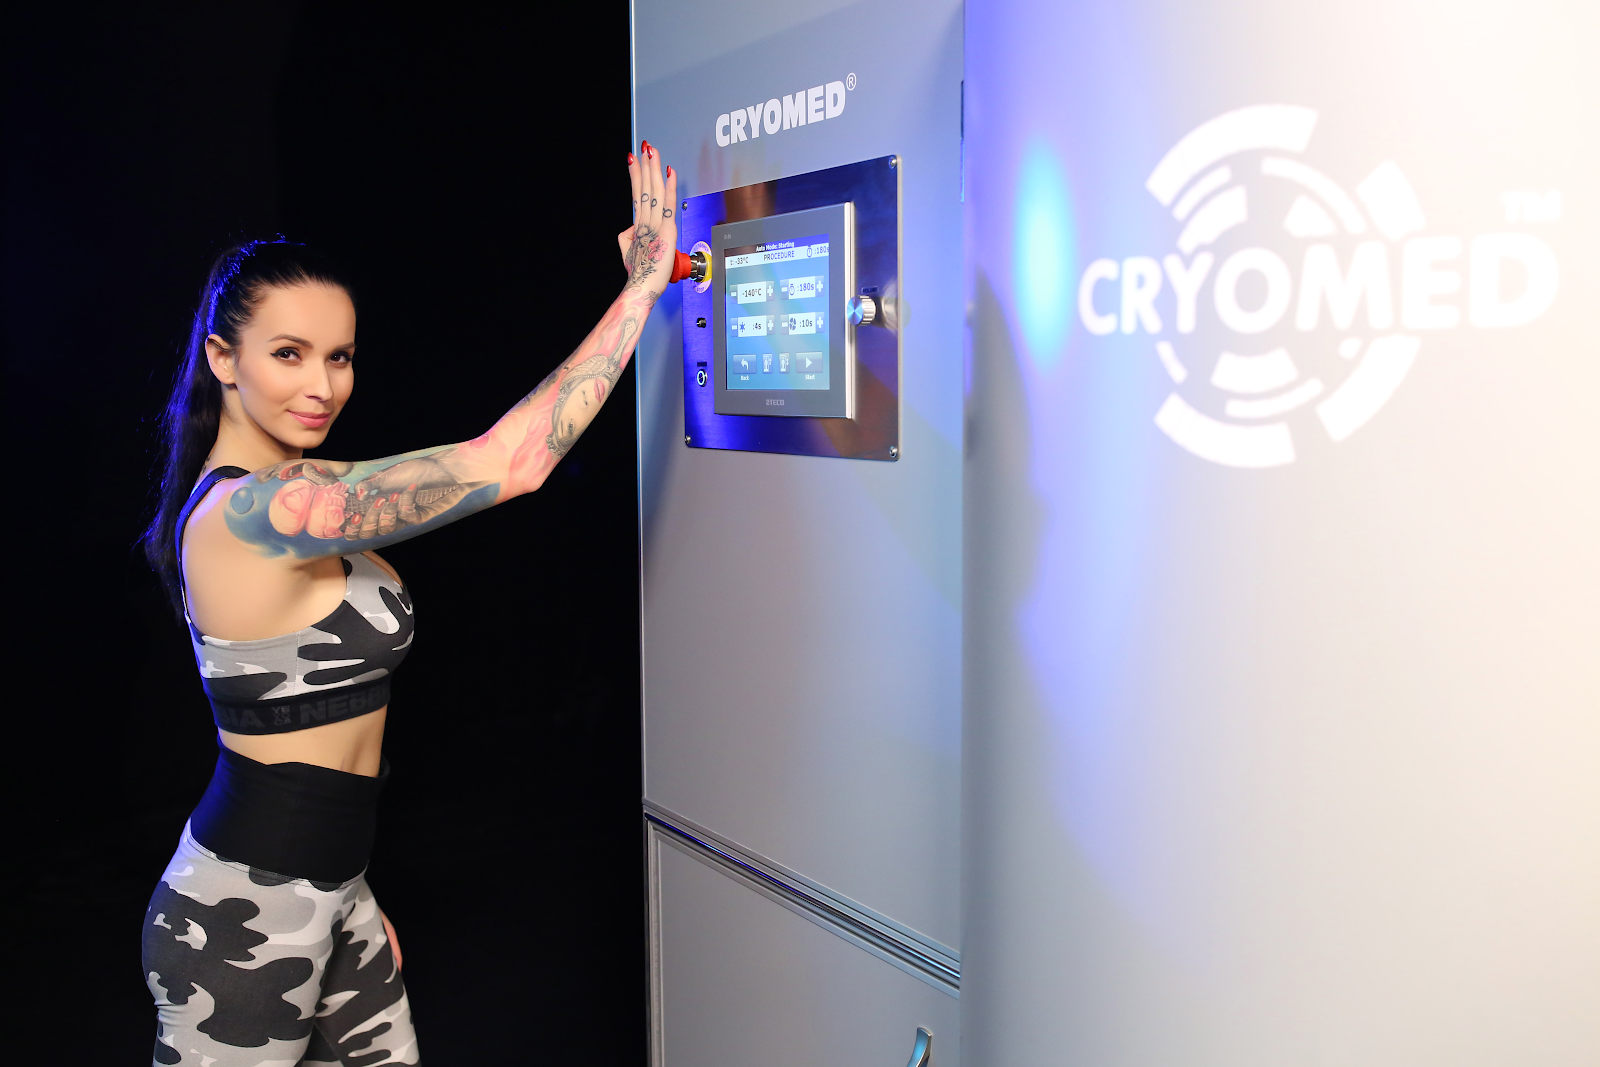 Cryosauna for 10,000 Euro